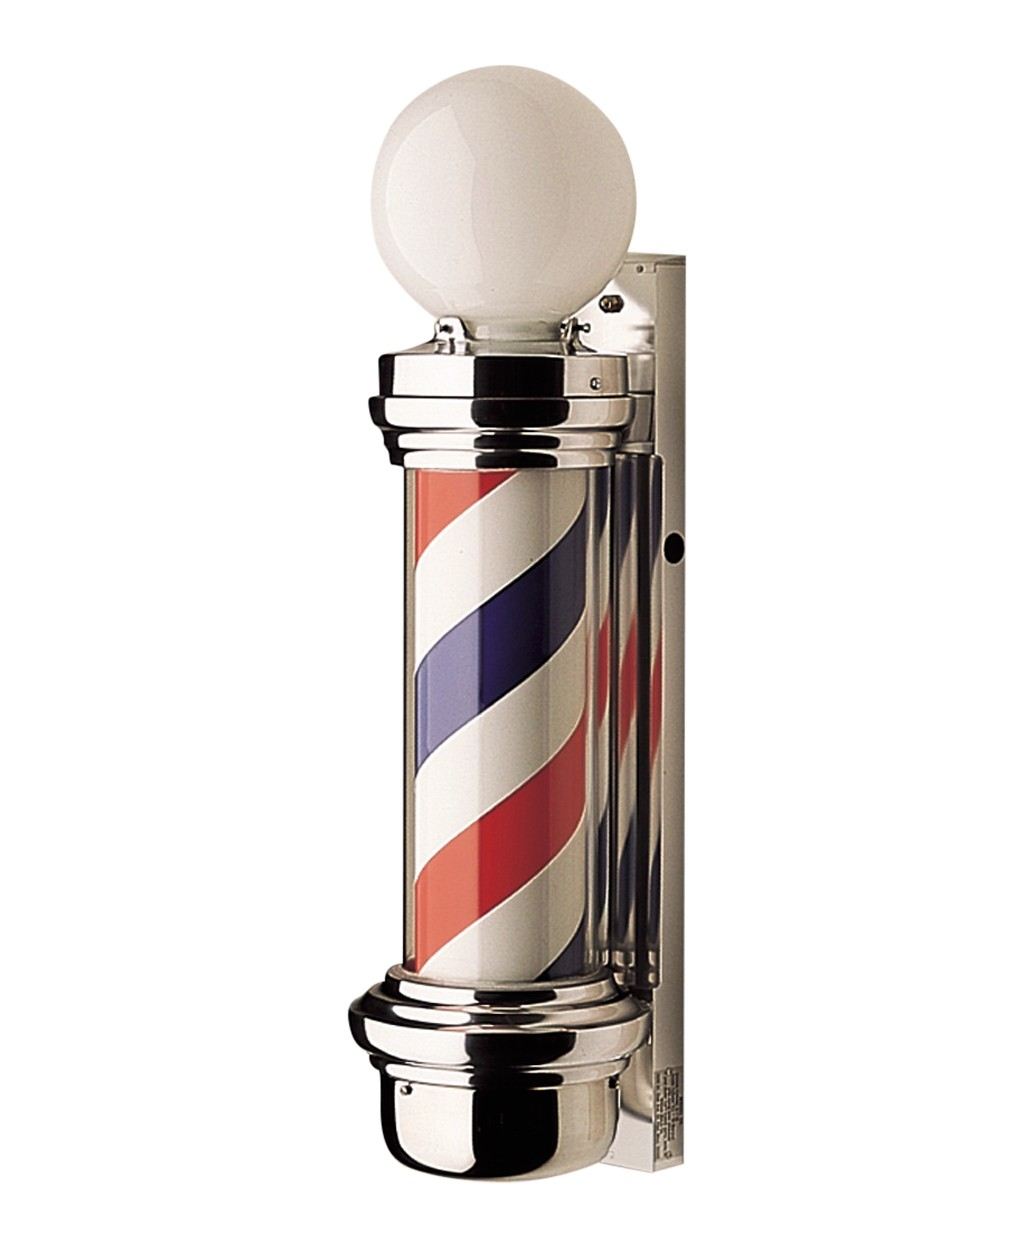 Marvy Barber Pole 55 With 2 Lights